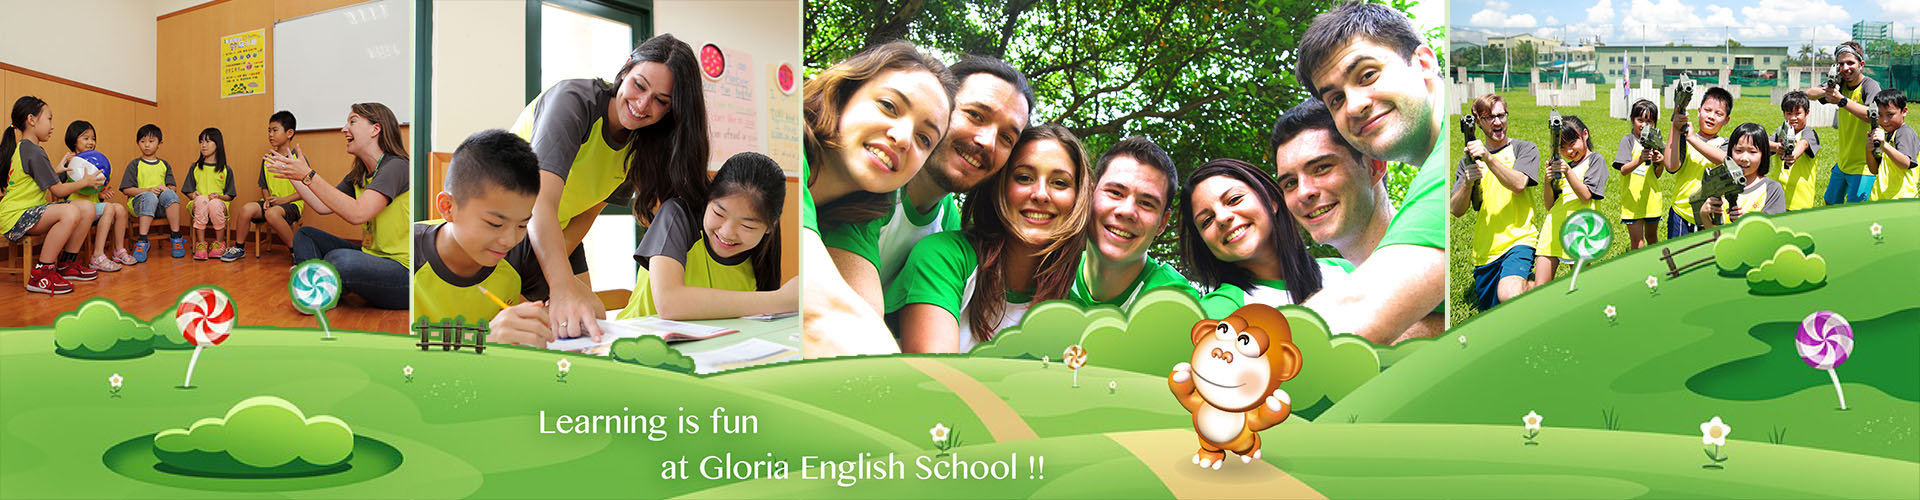 Gloria English School